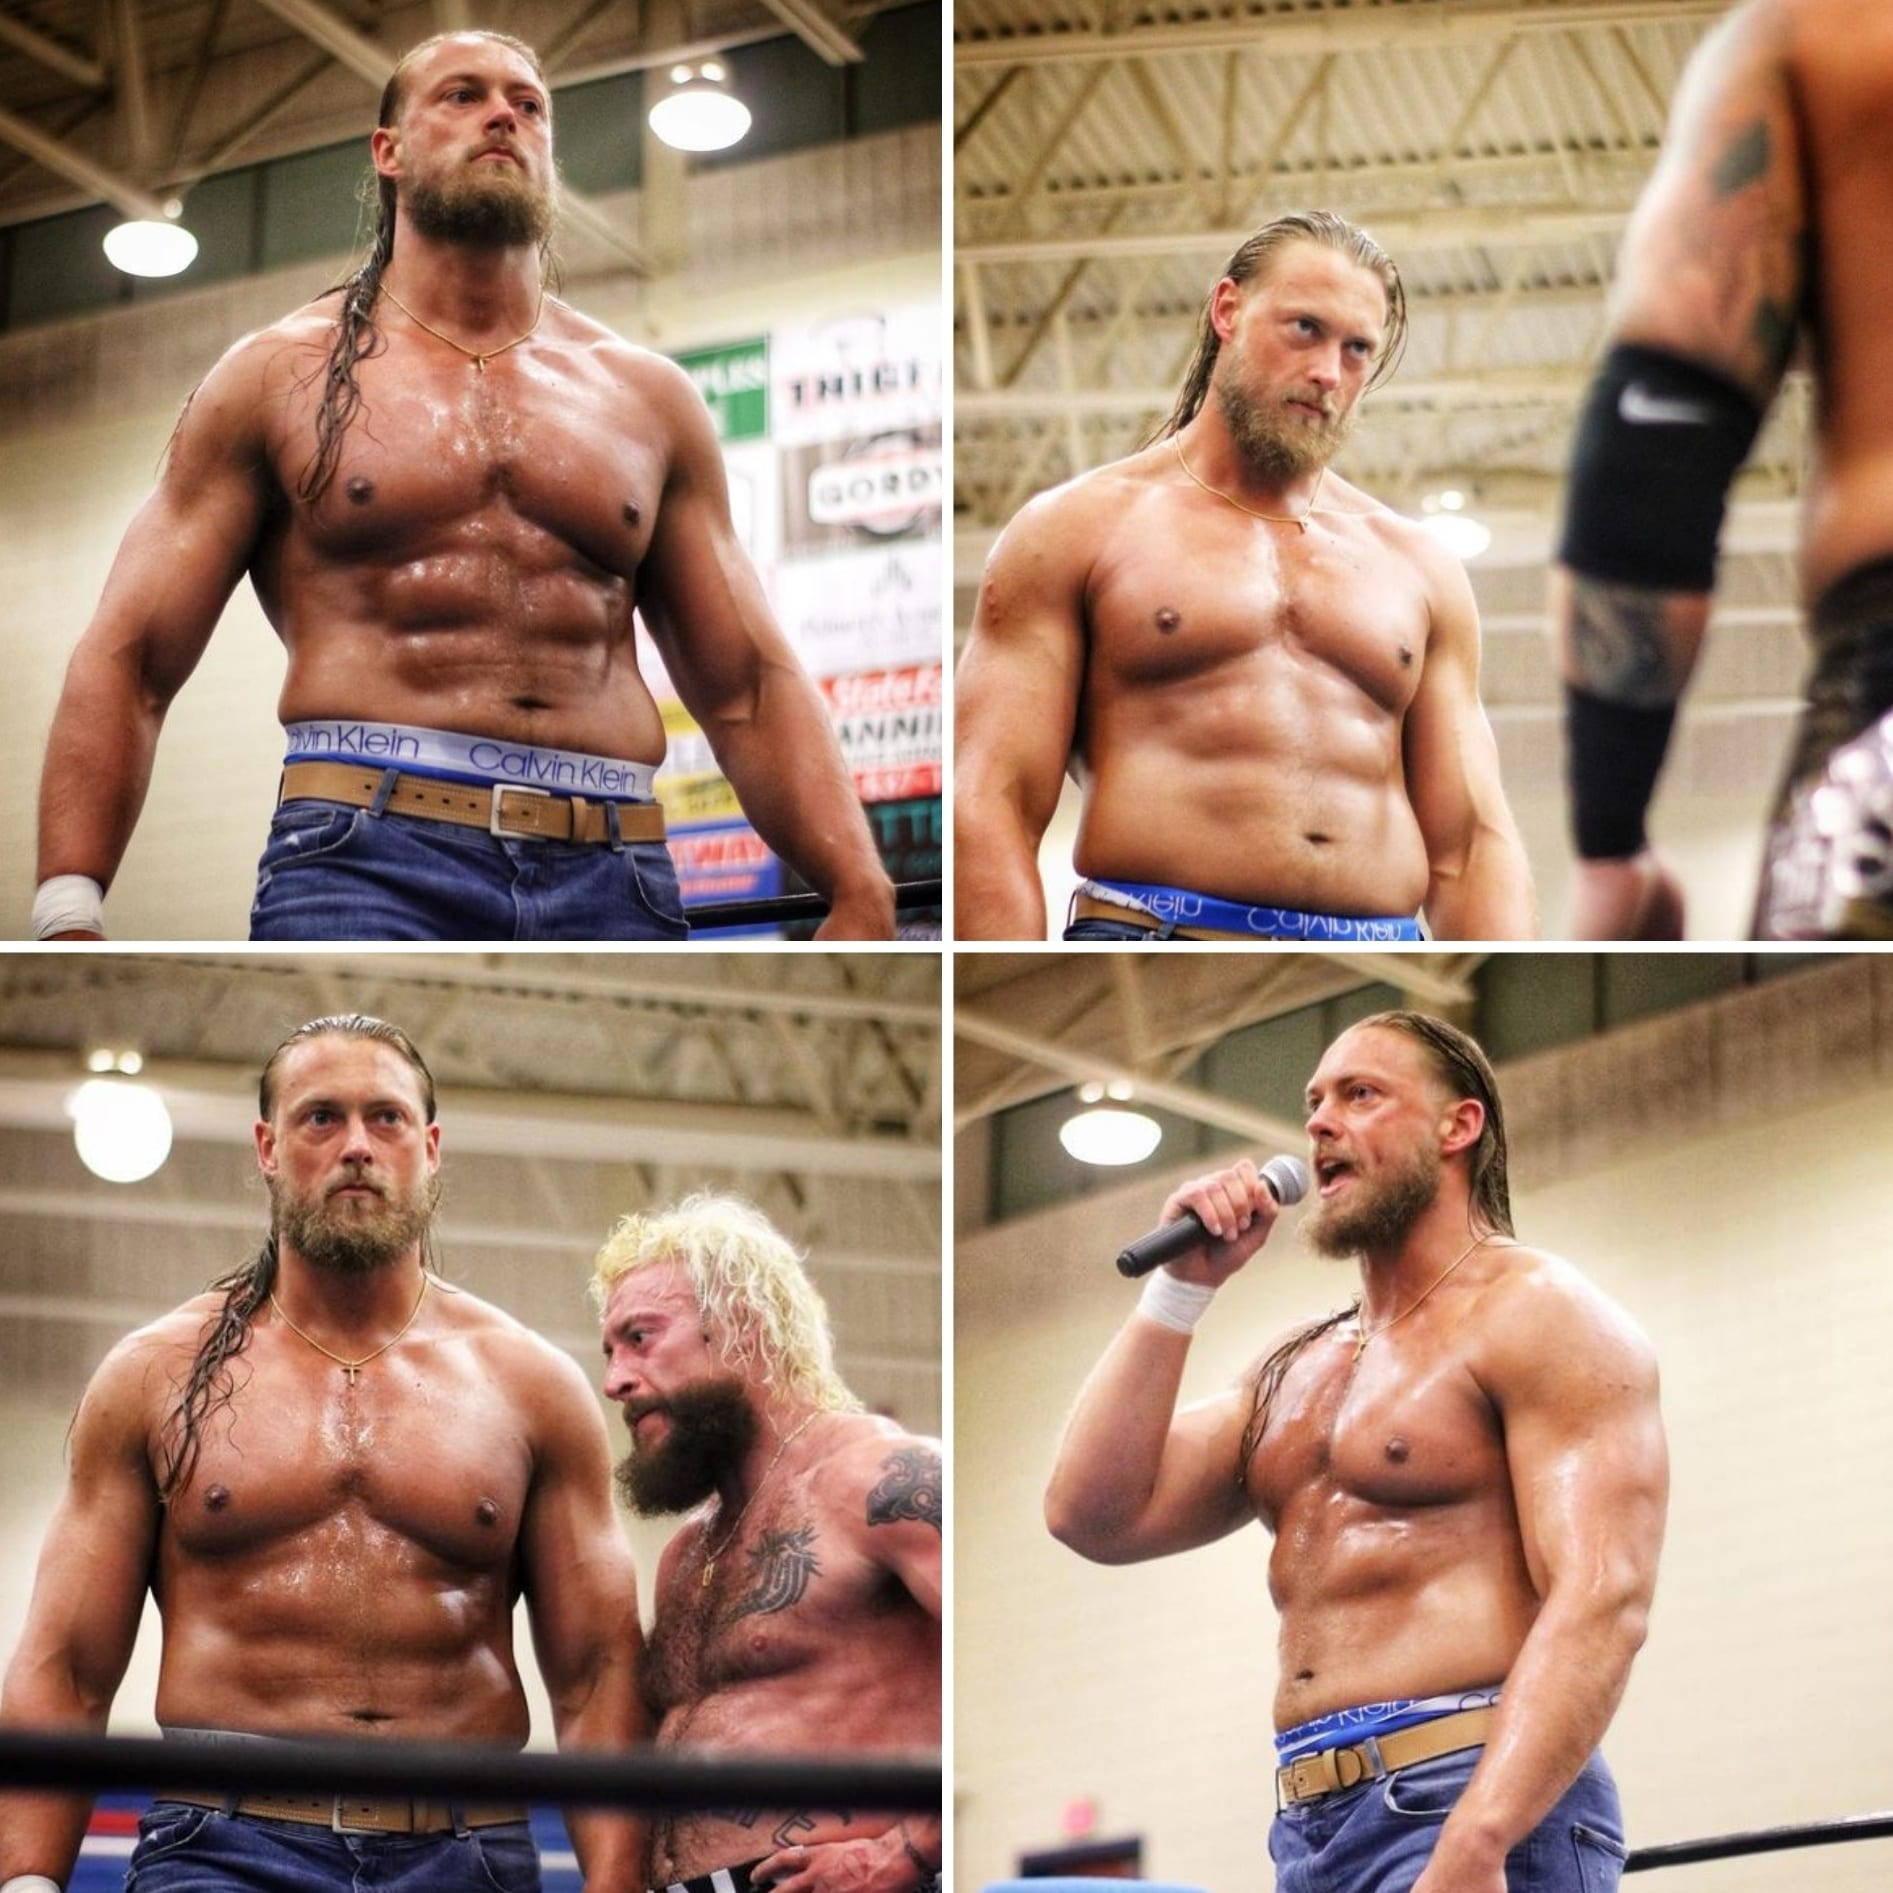 Big Cass Abs Muscles Ripped Jacked Physique Body February 2021